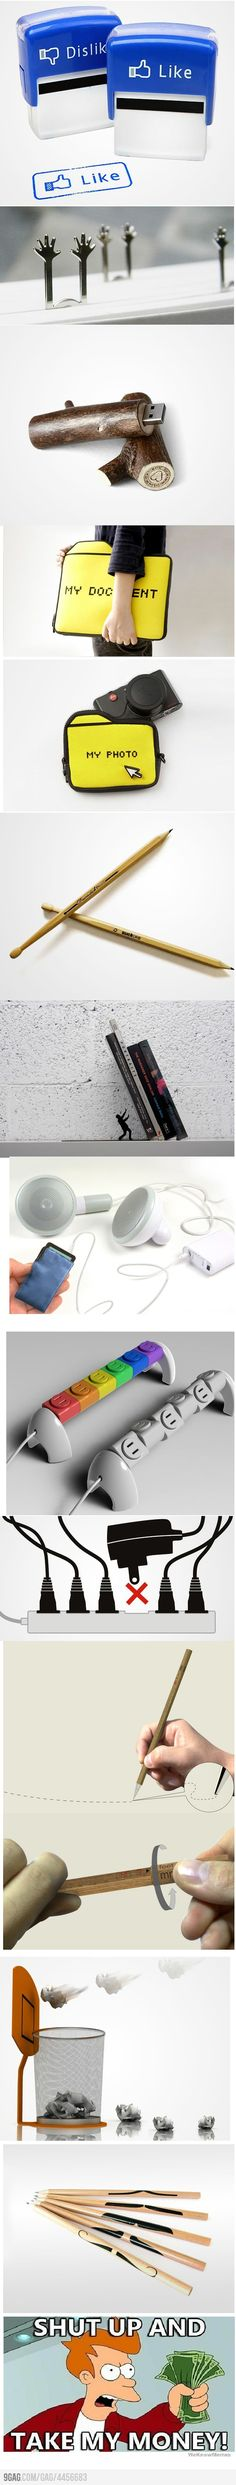 Giant earphones? Your argument is invalid. #want